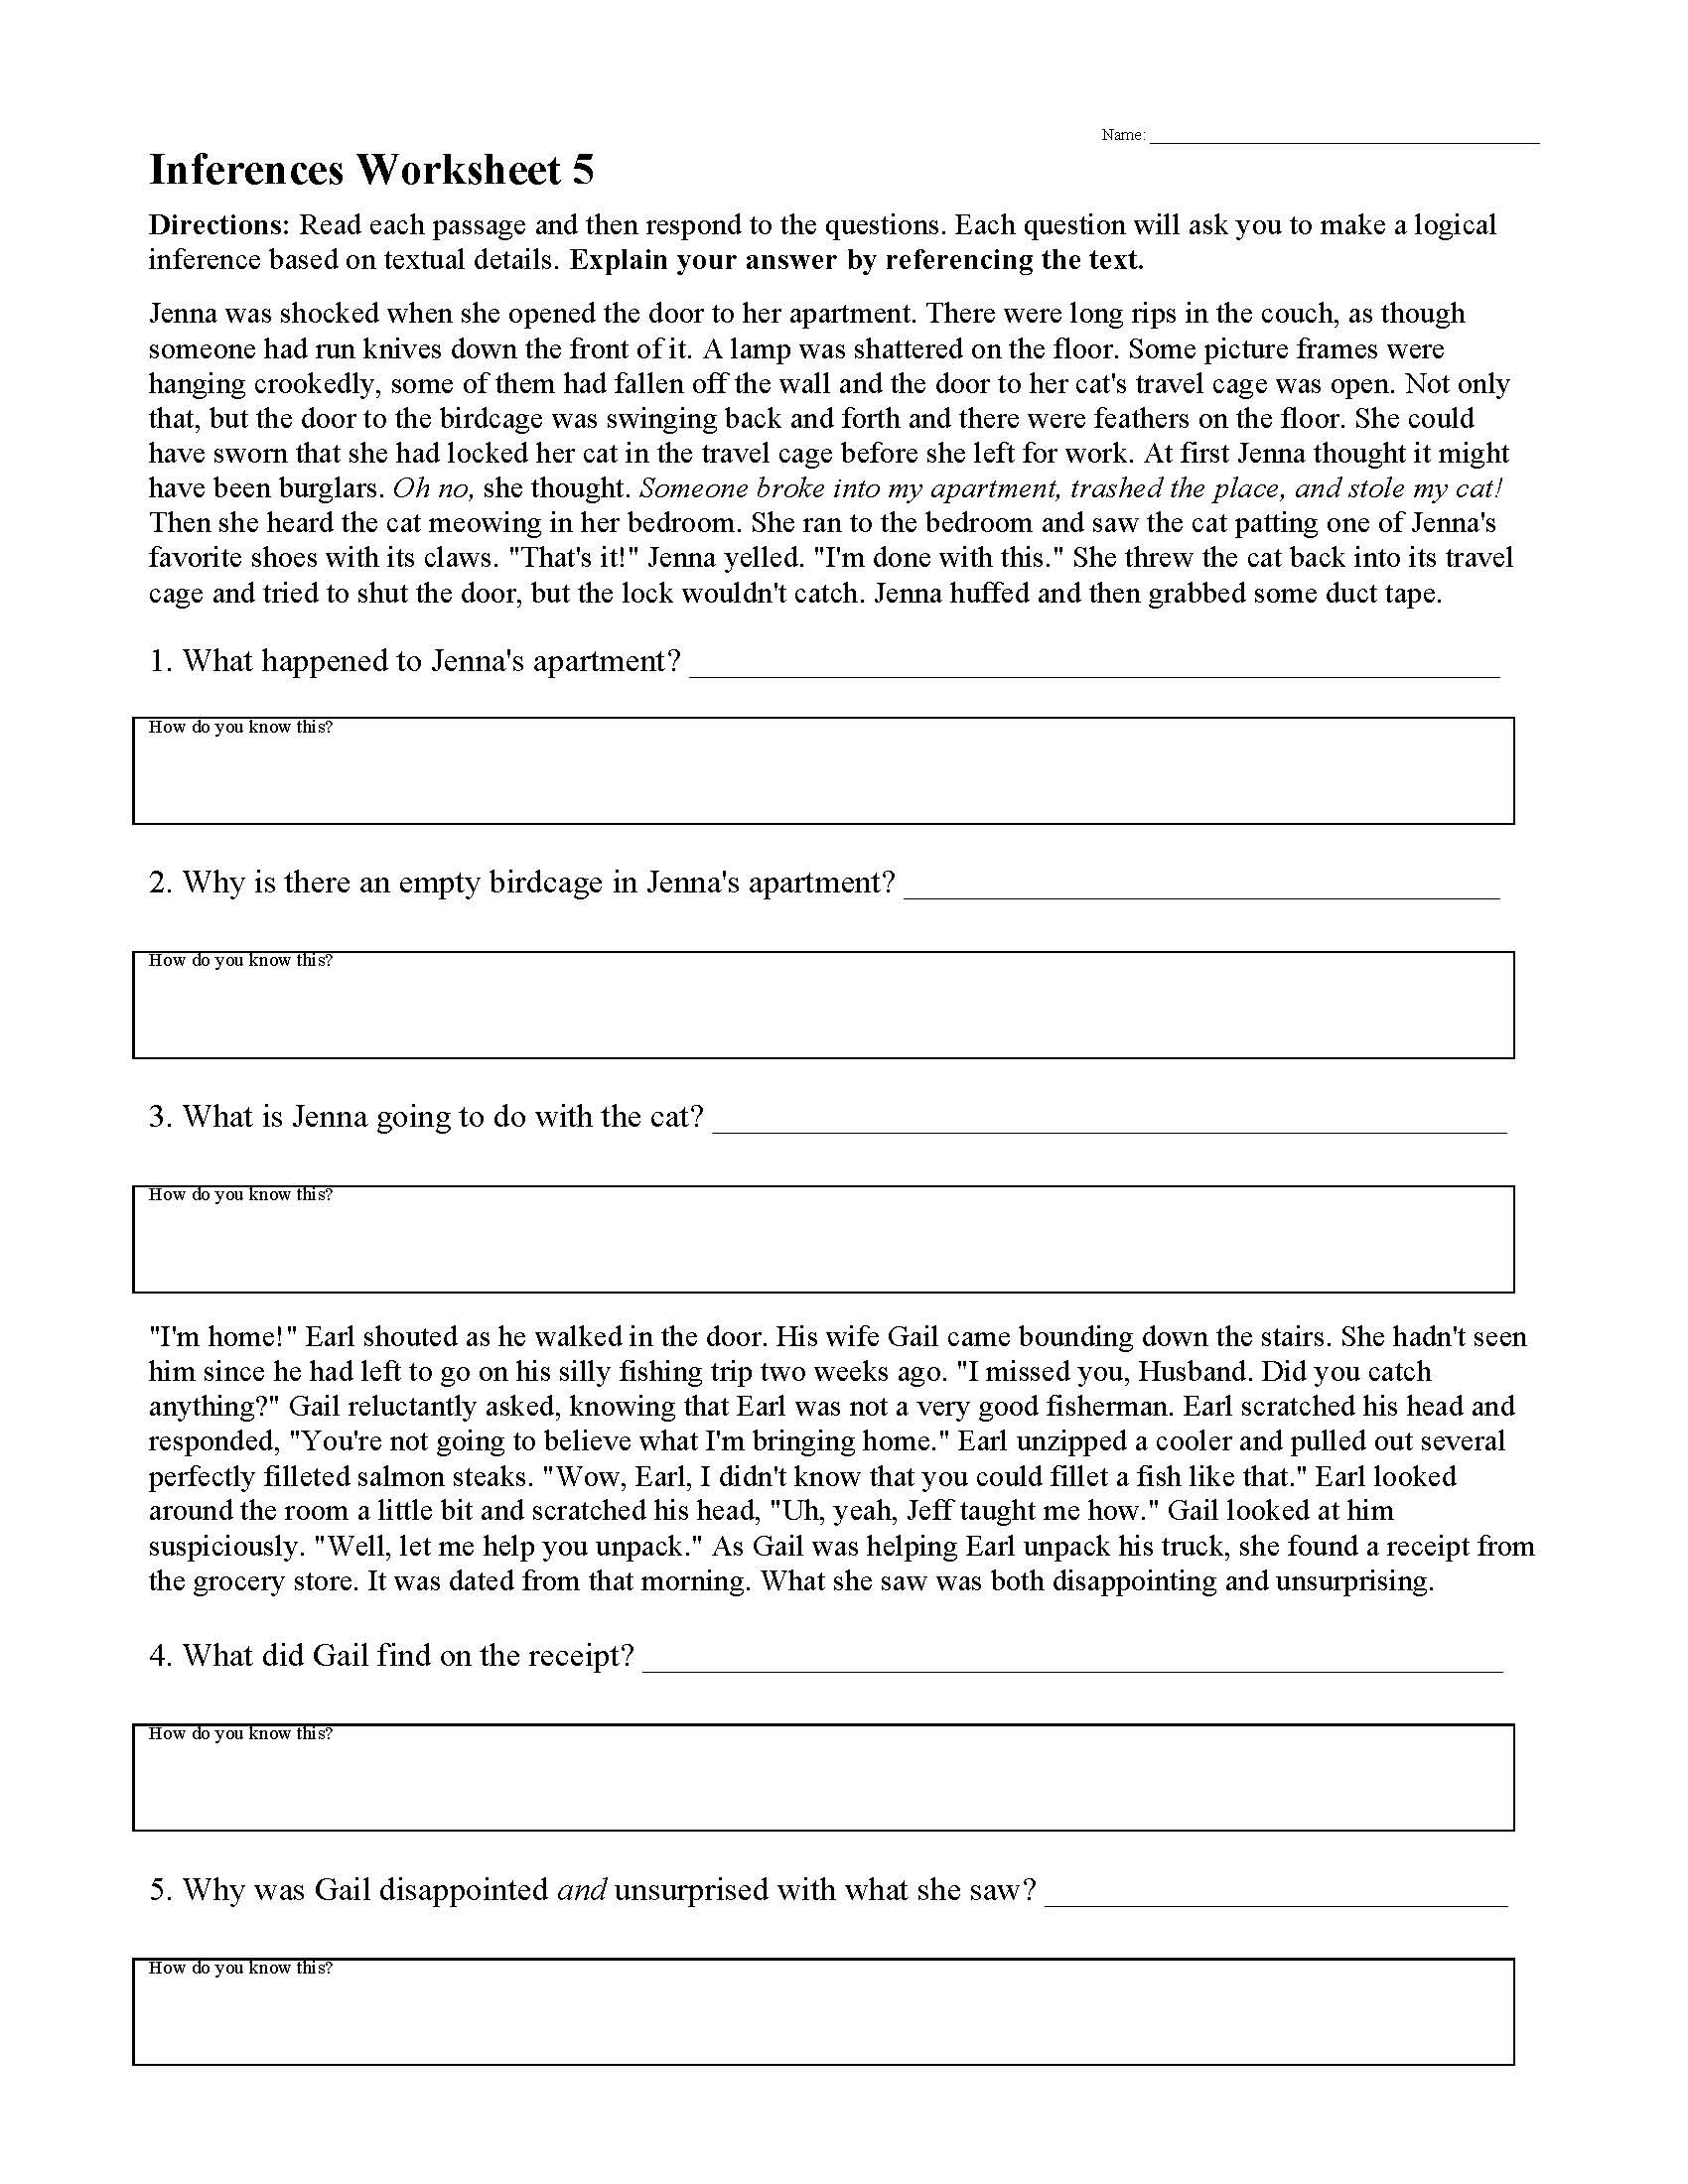 Observation and Inference Worksheet